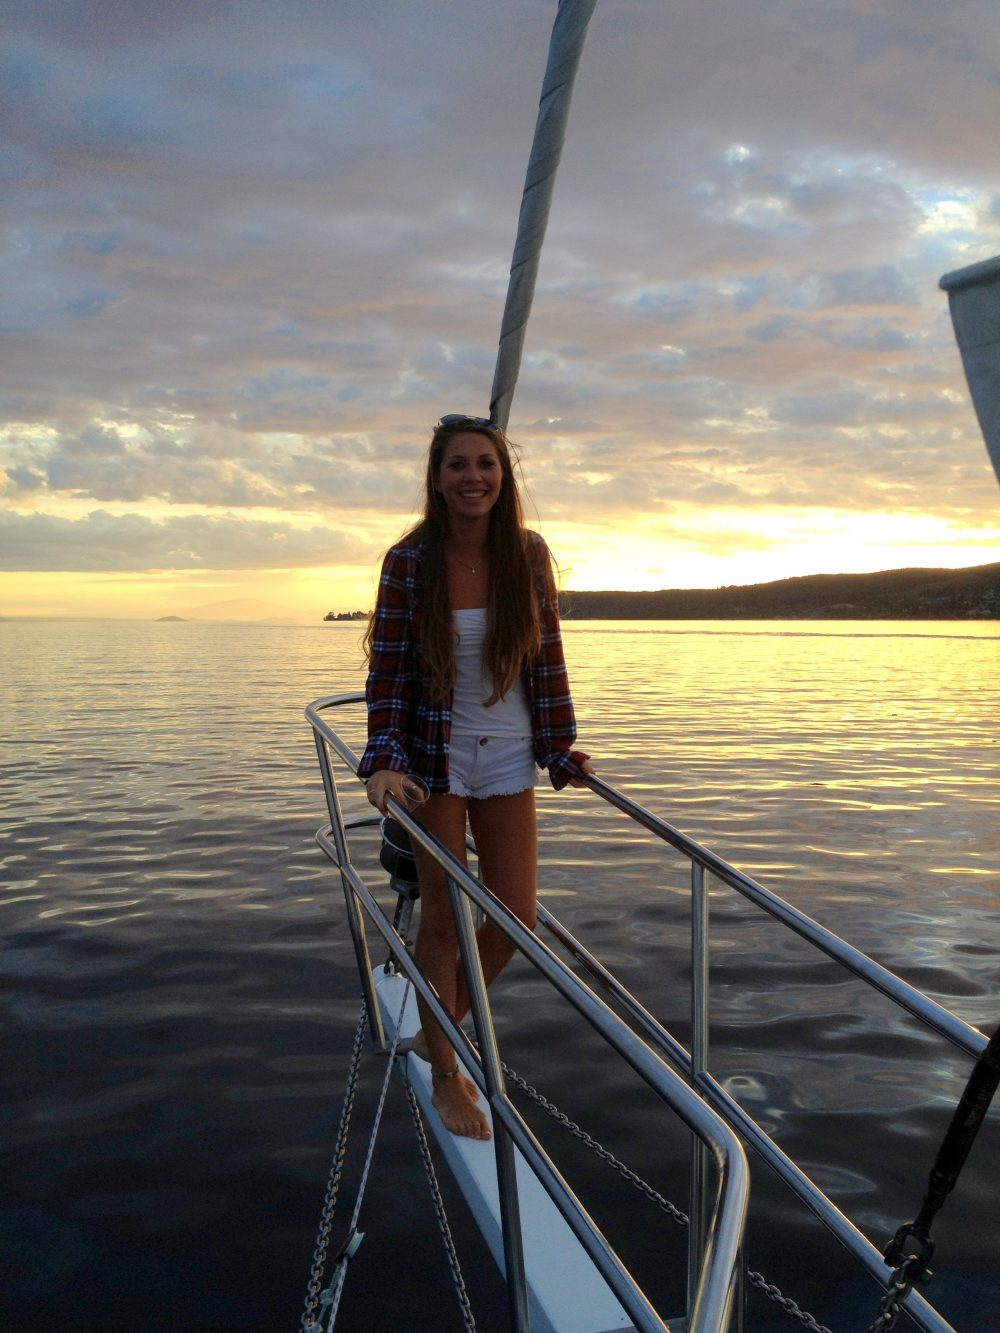 Sailing on Lake Taupō at sunset